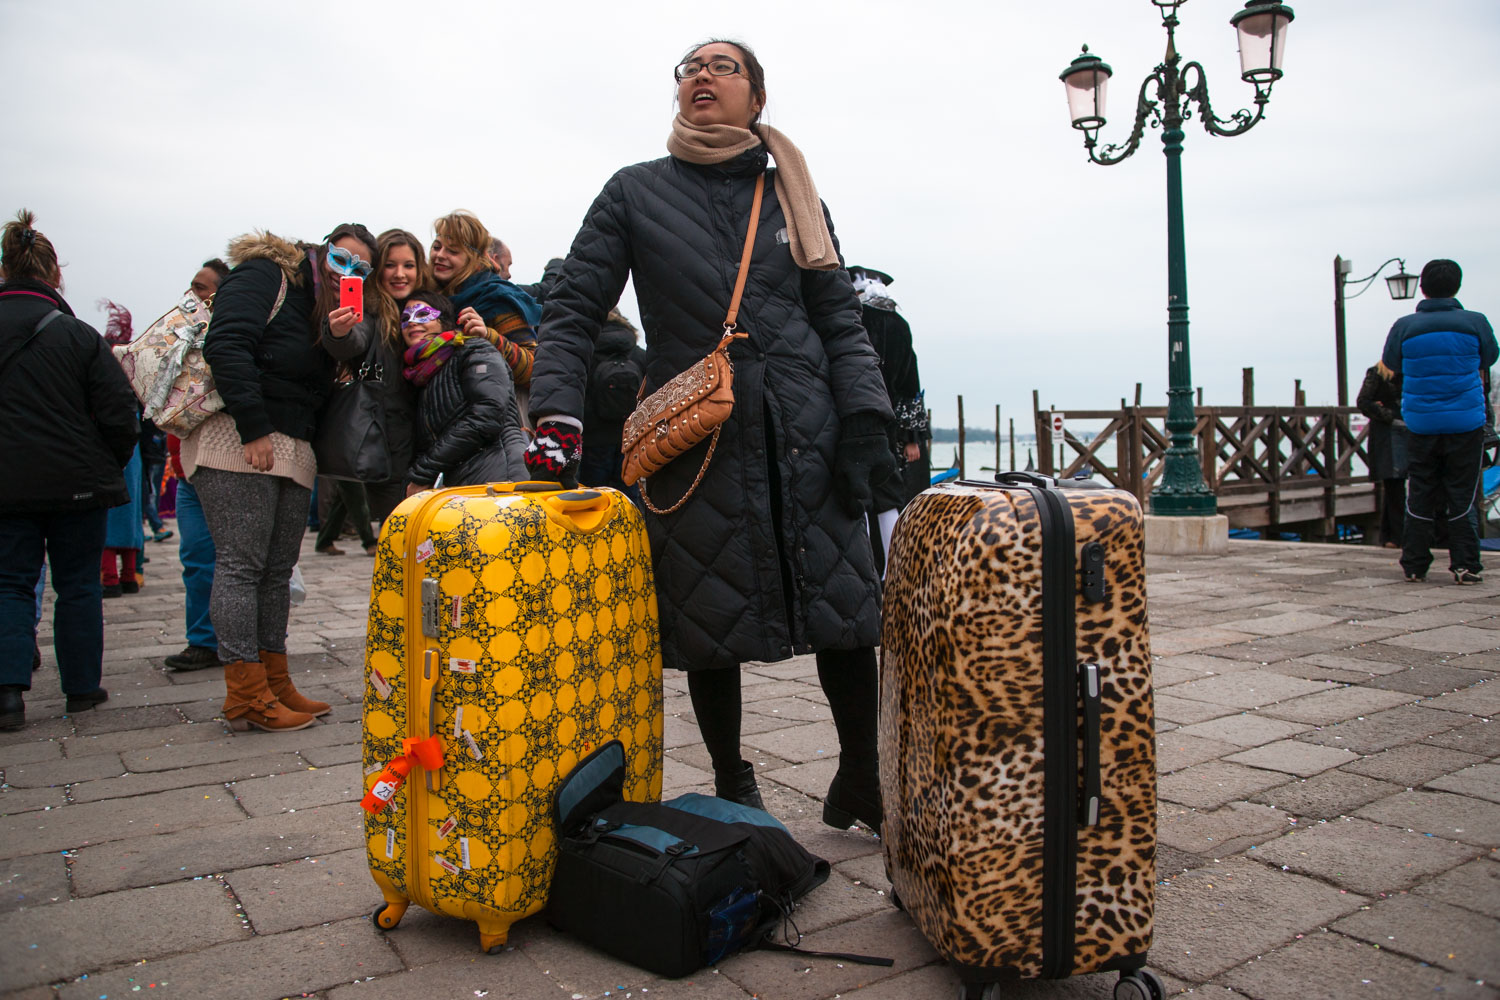 Tourist and Devices